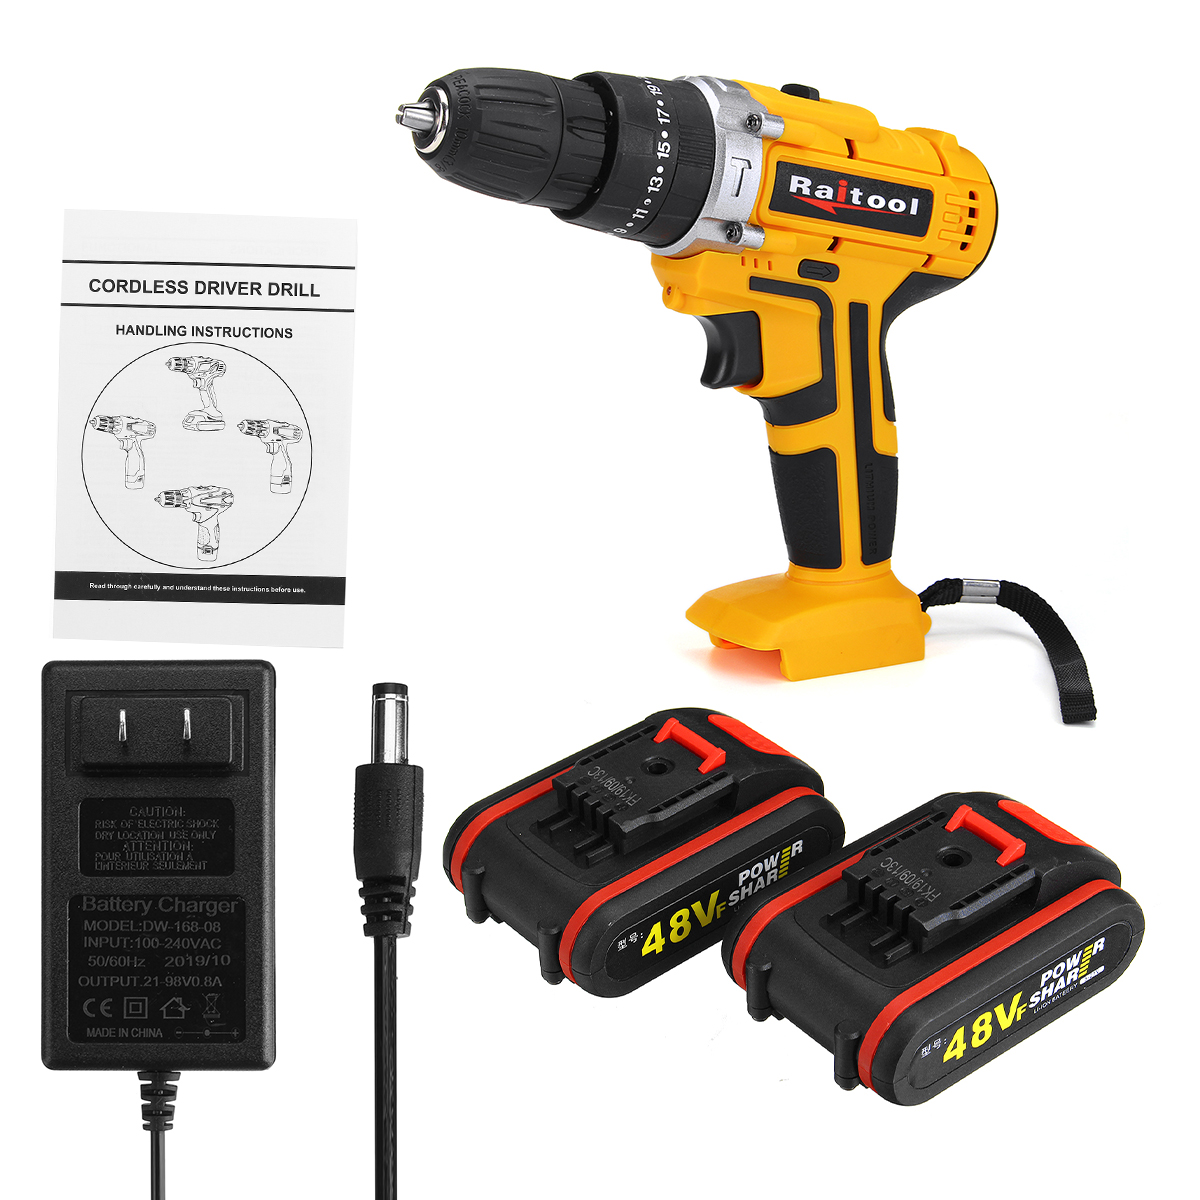 Raitool 48VF Cordless Electric Impact Drill Rechargeable 3/8 inch Drill Screwdriver W/ 1 or 2 Li-ion Battery